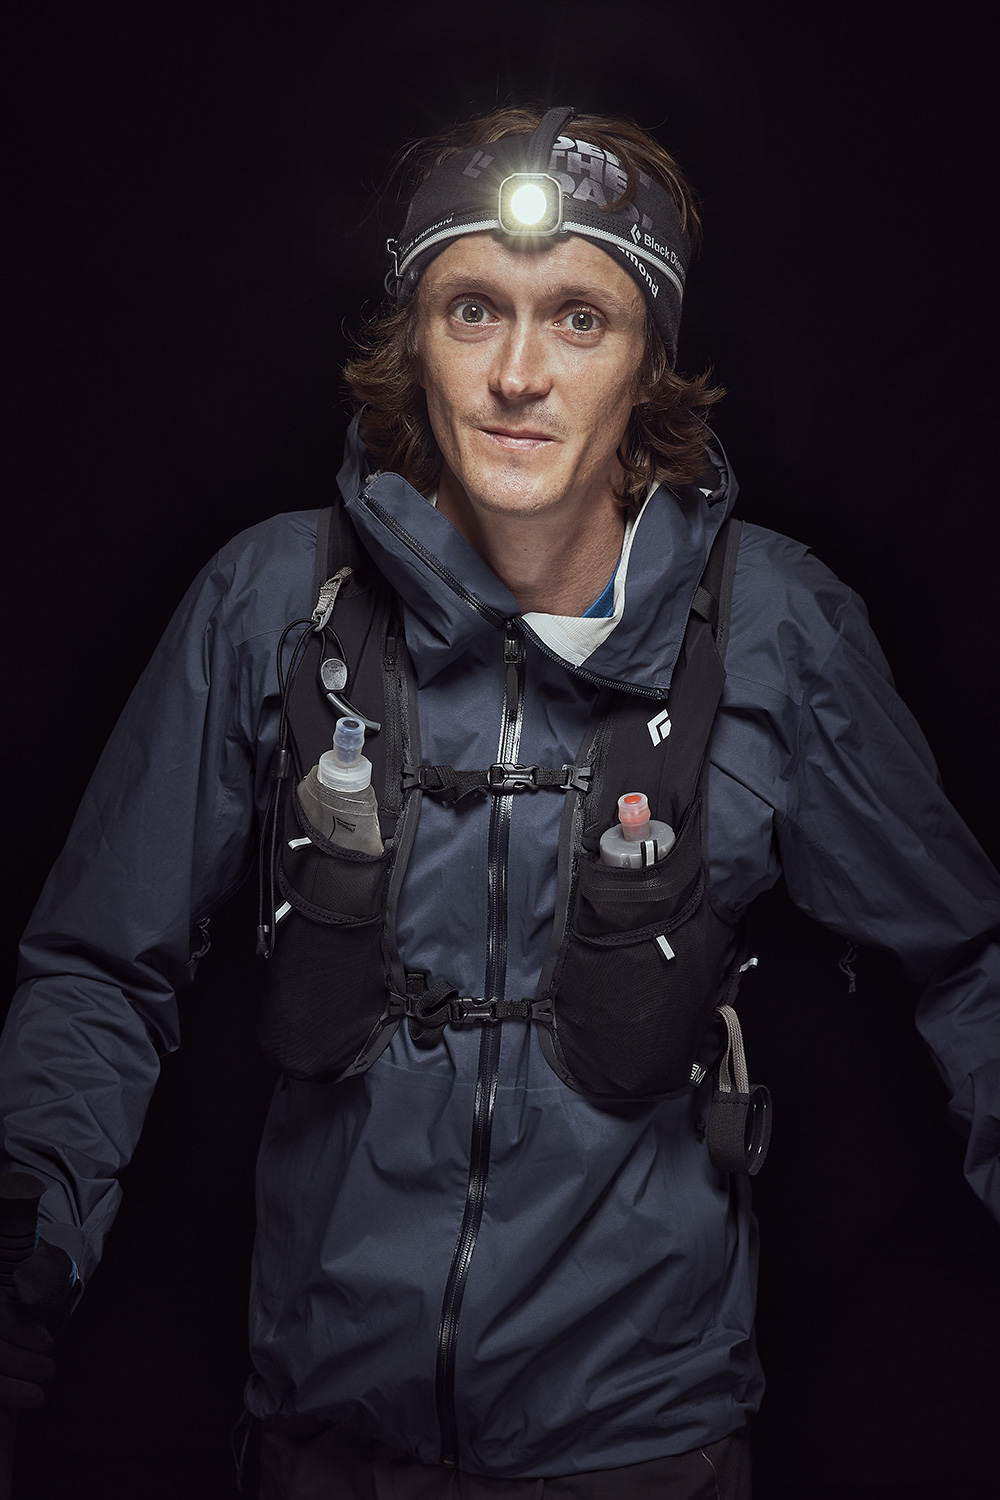 Portrait of trailrunner with his gear in studio